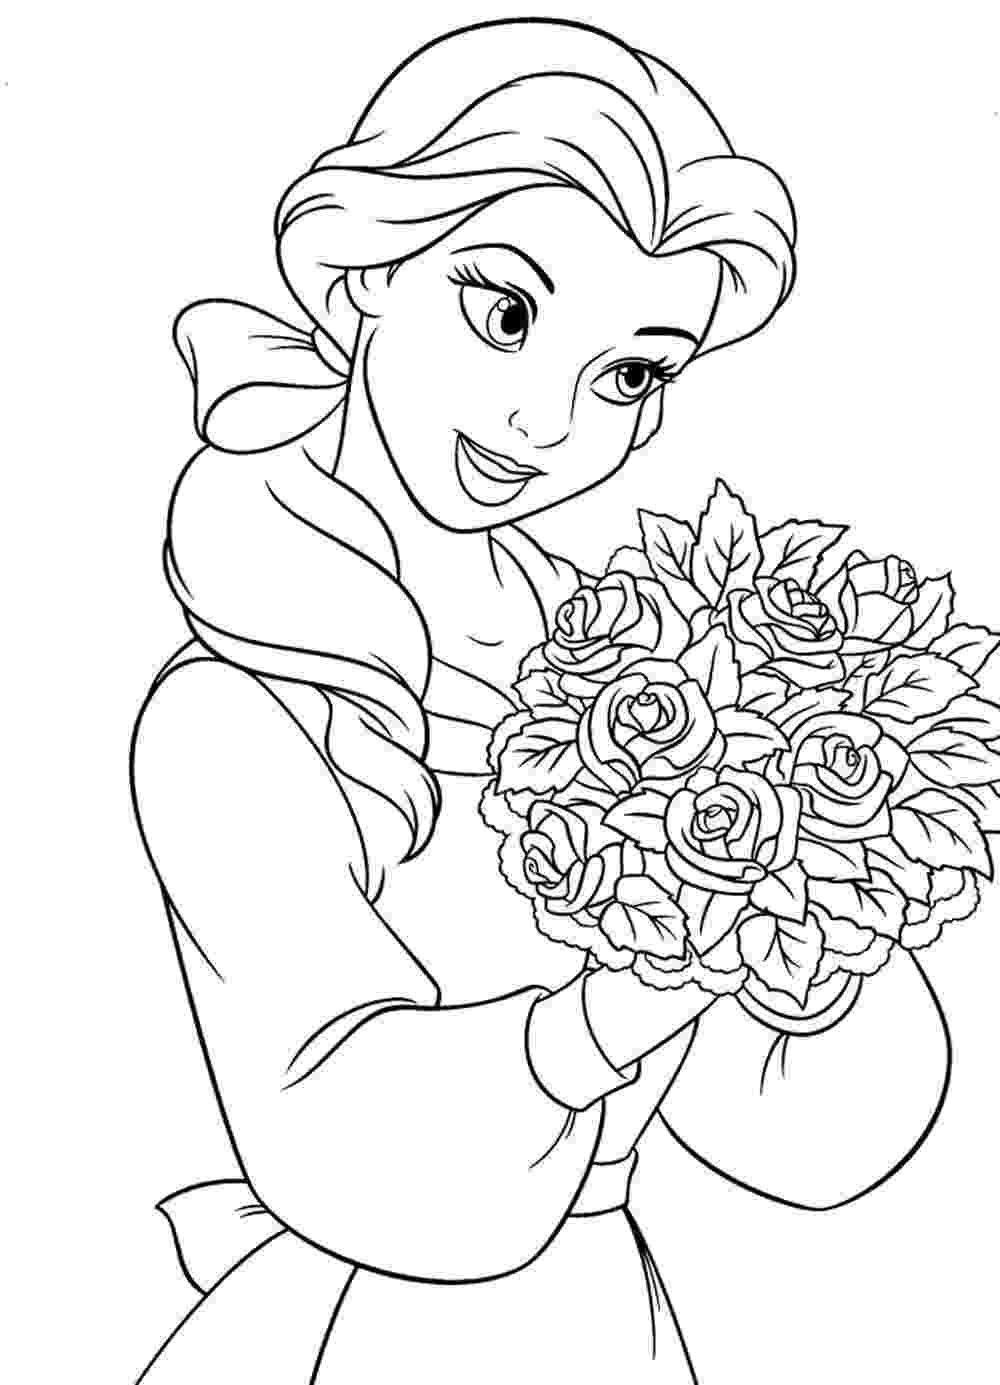 coloring pages for girls princess printable barbie princess coloring pages for kids cool2bkids for coloring princess girls pages